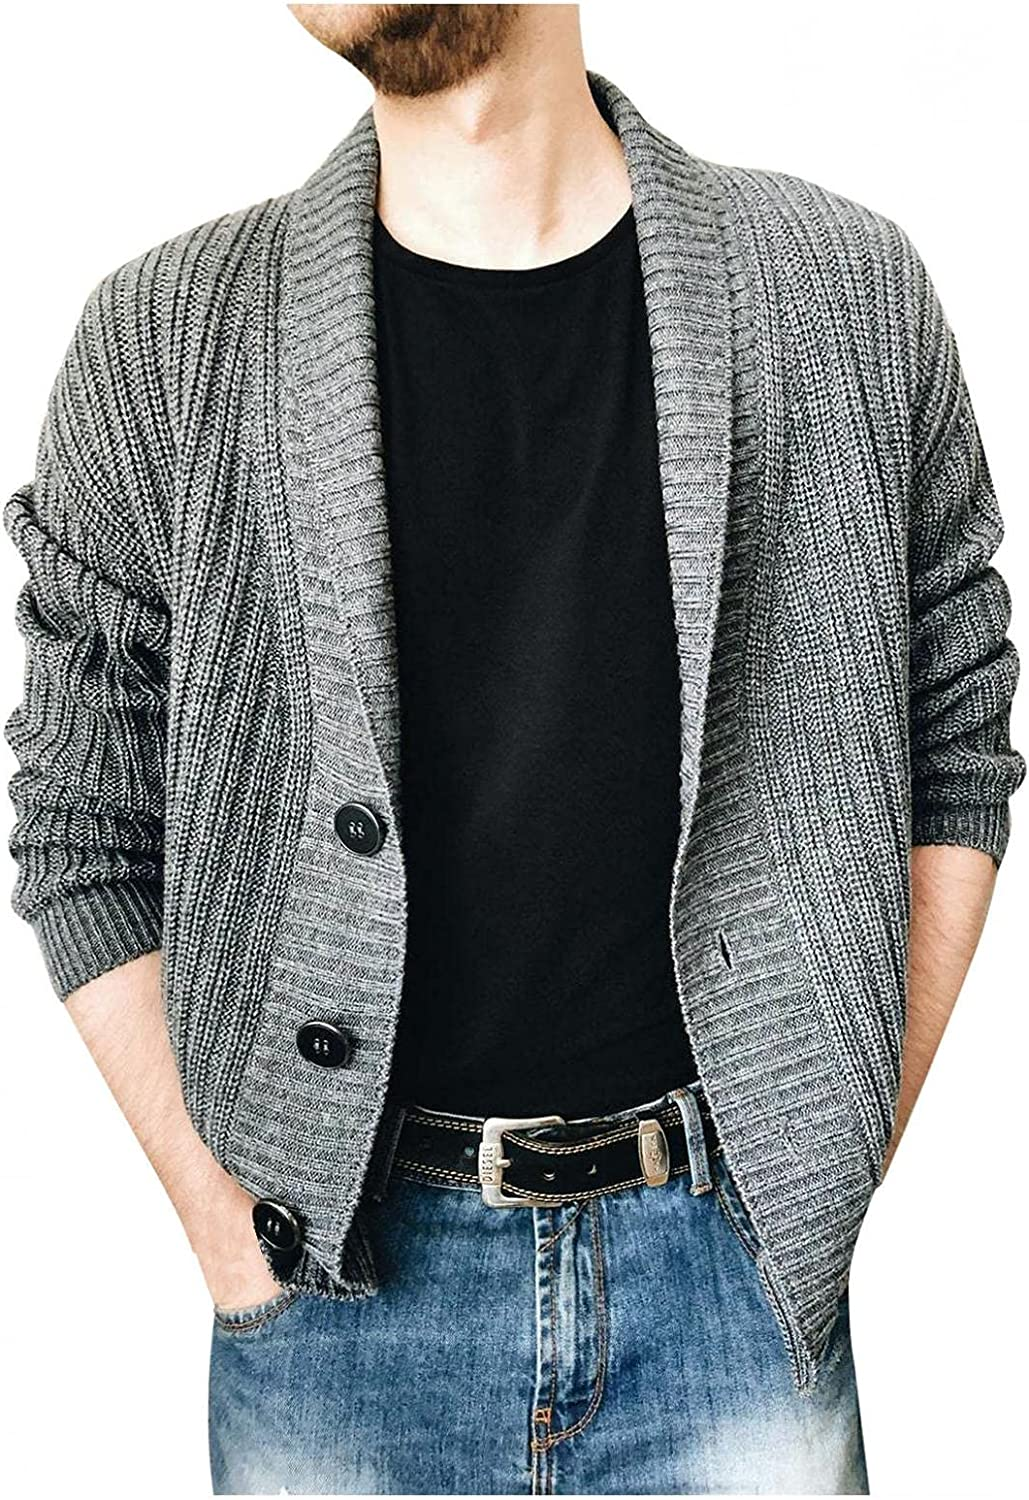 Huangse Men's Shawl Collar Knit Sweater Jacket Long Cardigan Sweaters Casual Long Sleeve Open Front Knit Sweater Coat